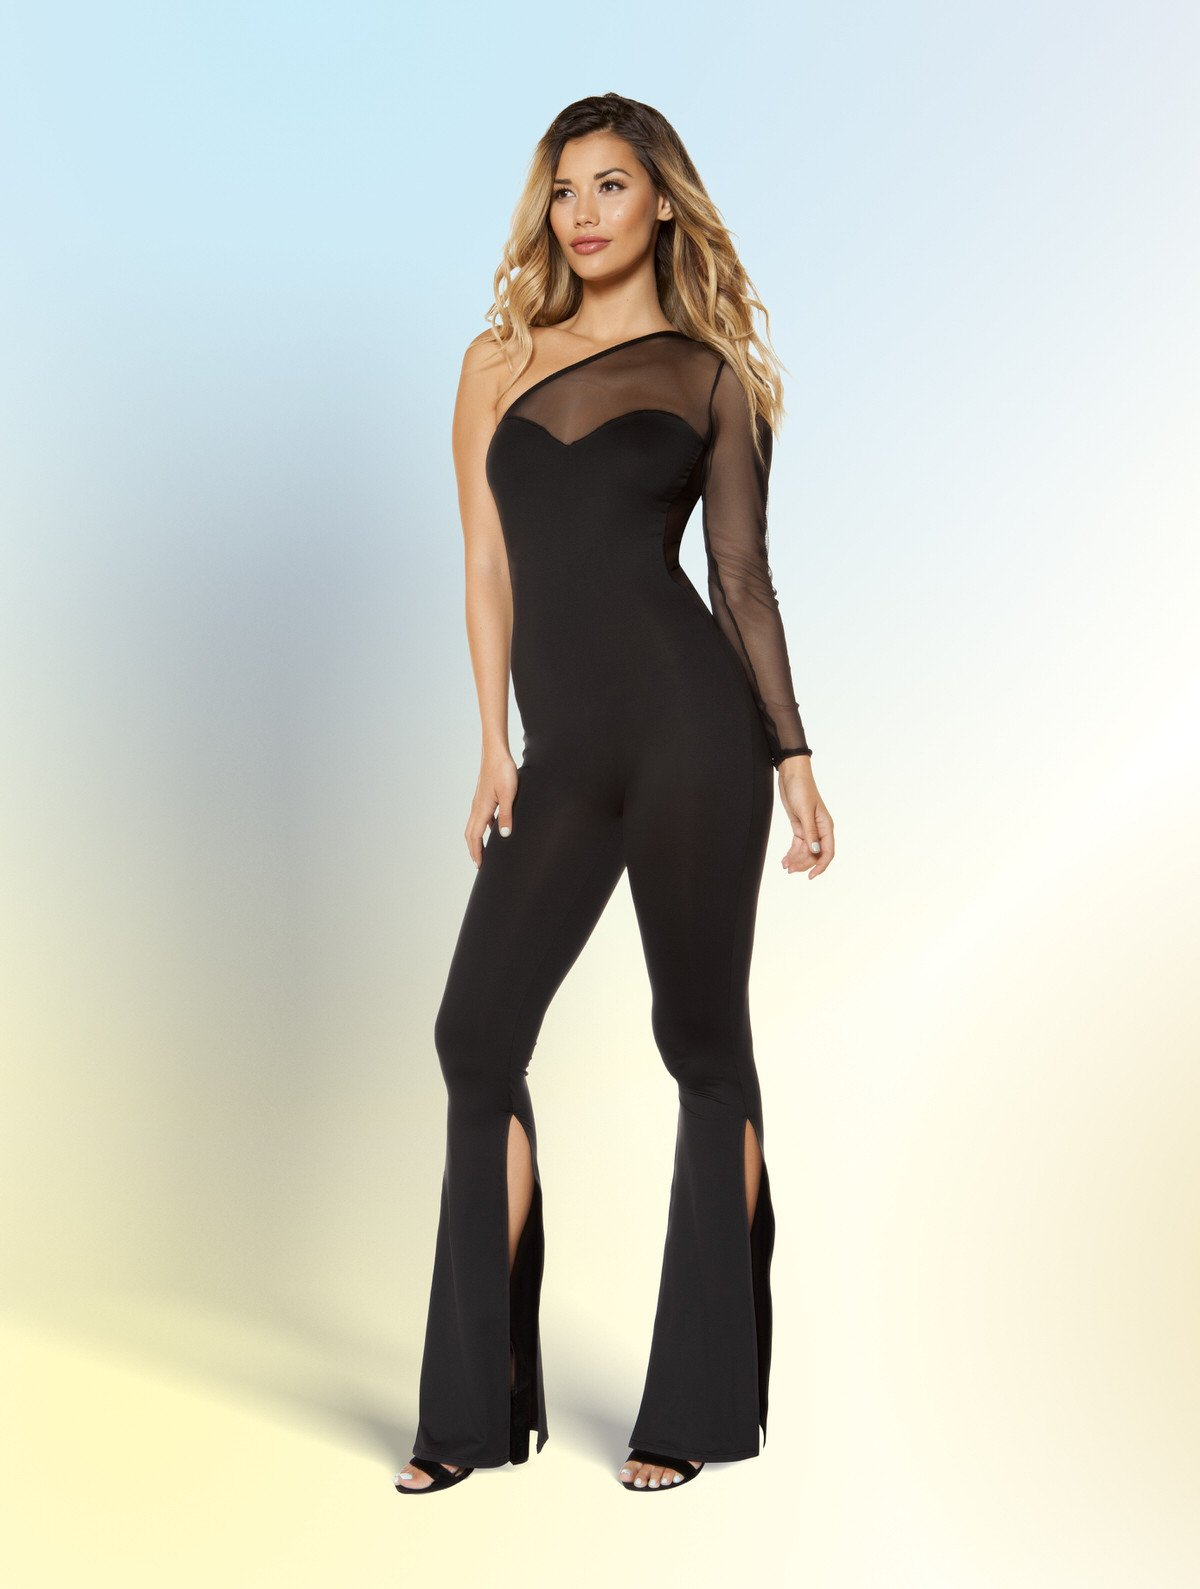 3399 - Single Sleeved Jumpsuit with Slit Bottoms